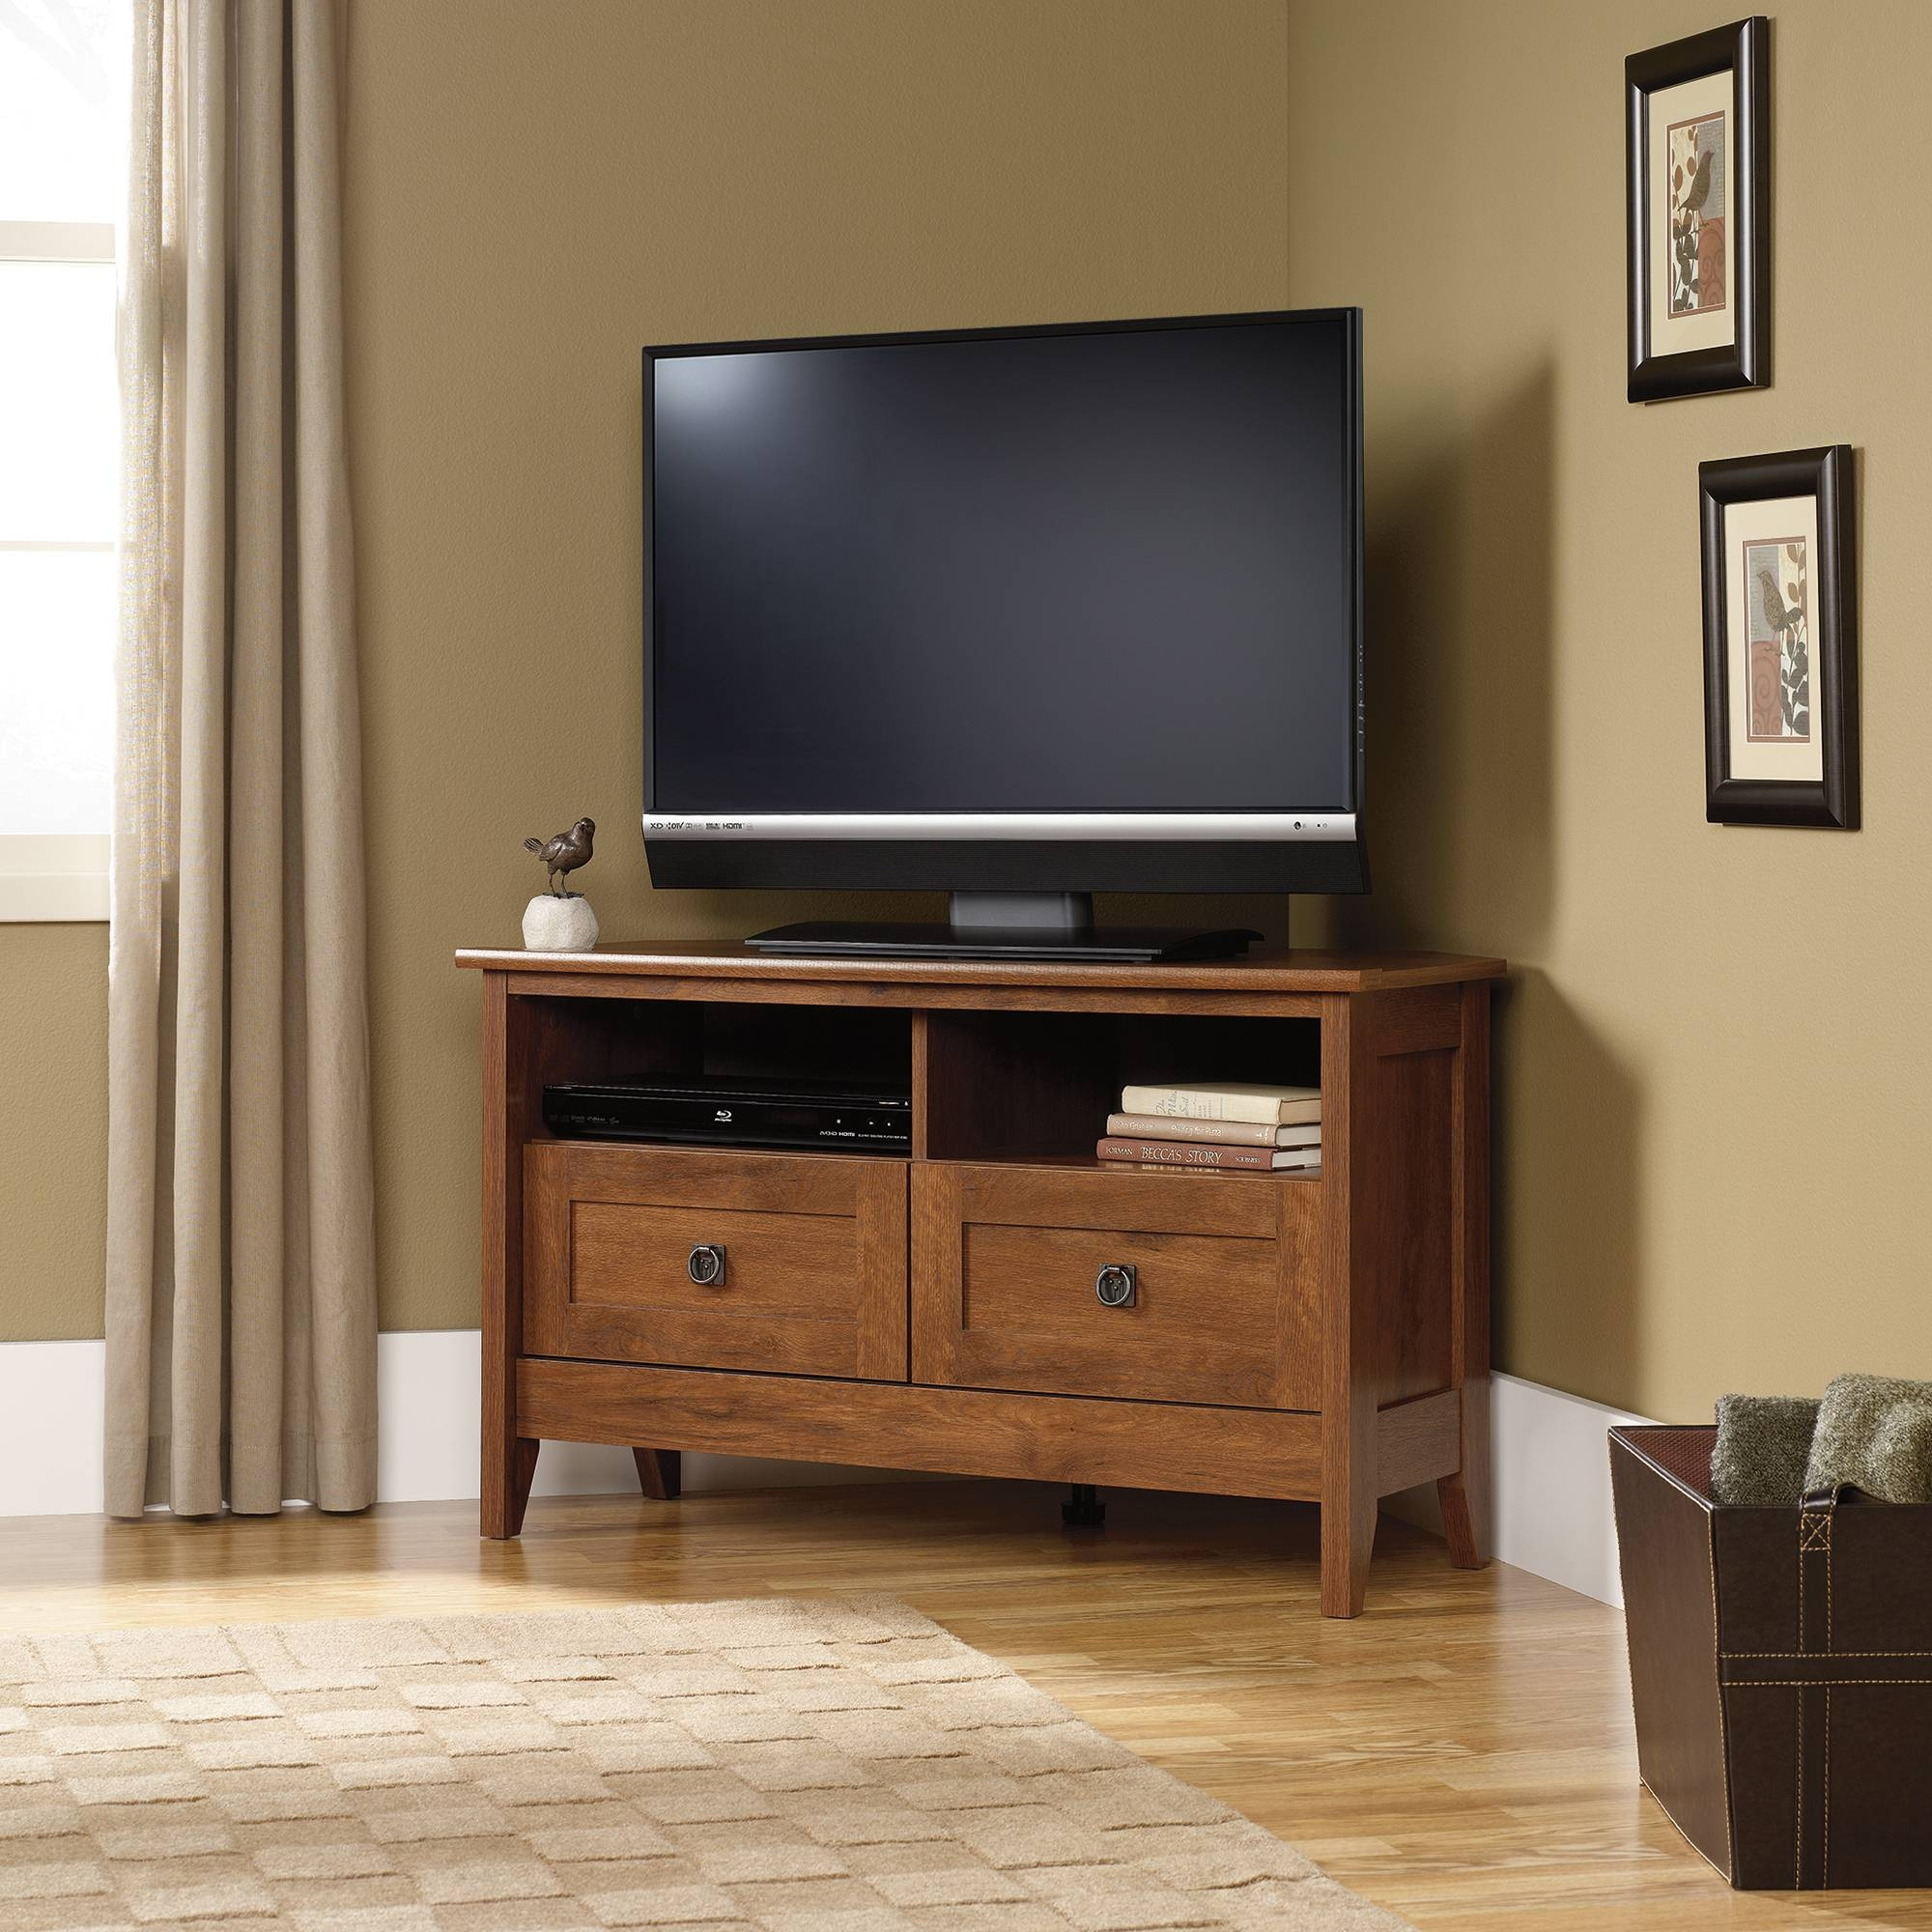 Sauder Select | Corner Tv Stand | 410627 | Sauder throughout Corner Tv Stands With Drawers (Image 11 of 15)